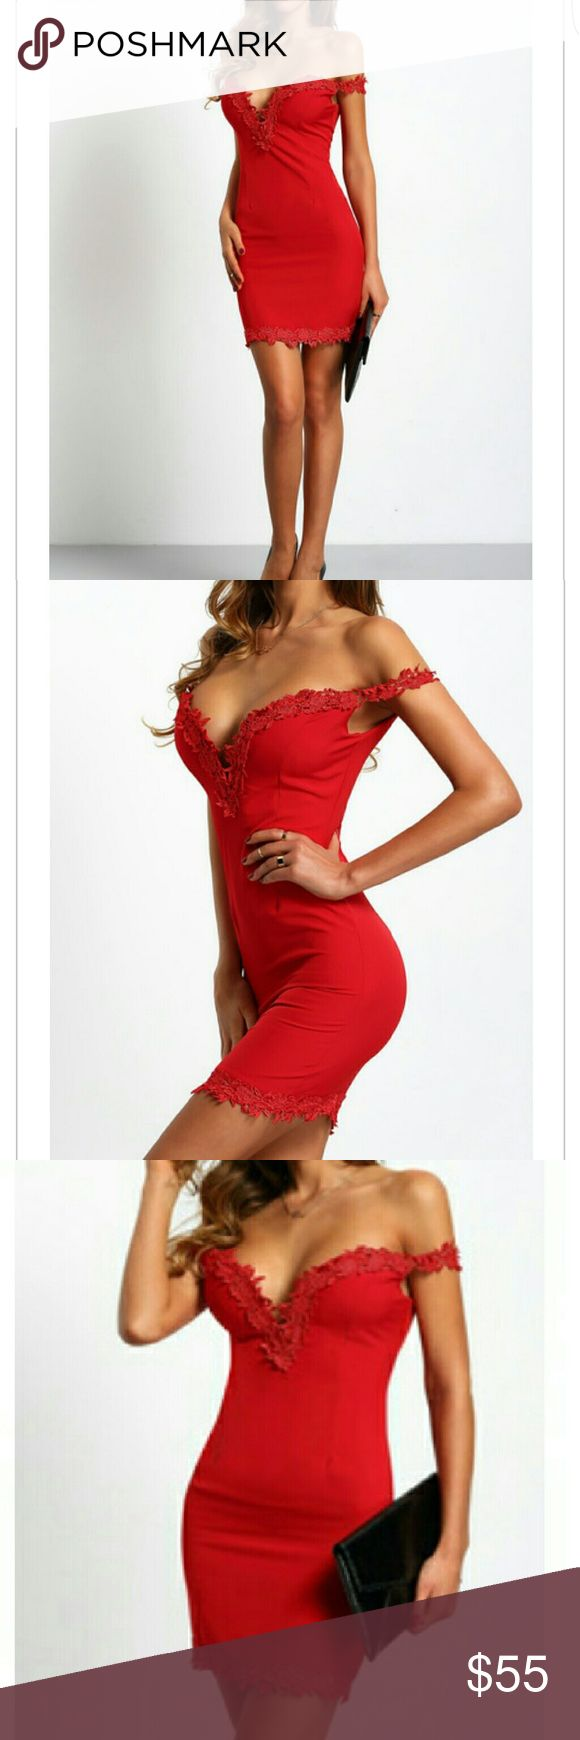 Bodycon sexy dress Red Sweetheart Neck Lace Slim Bodycon off the sholders dress Boutique  Dresses Mini